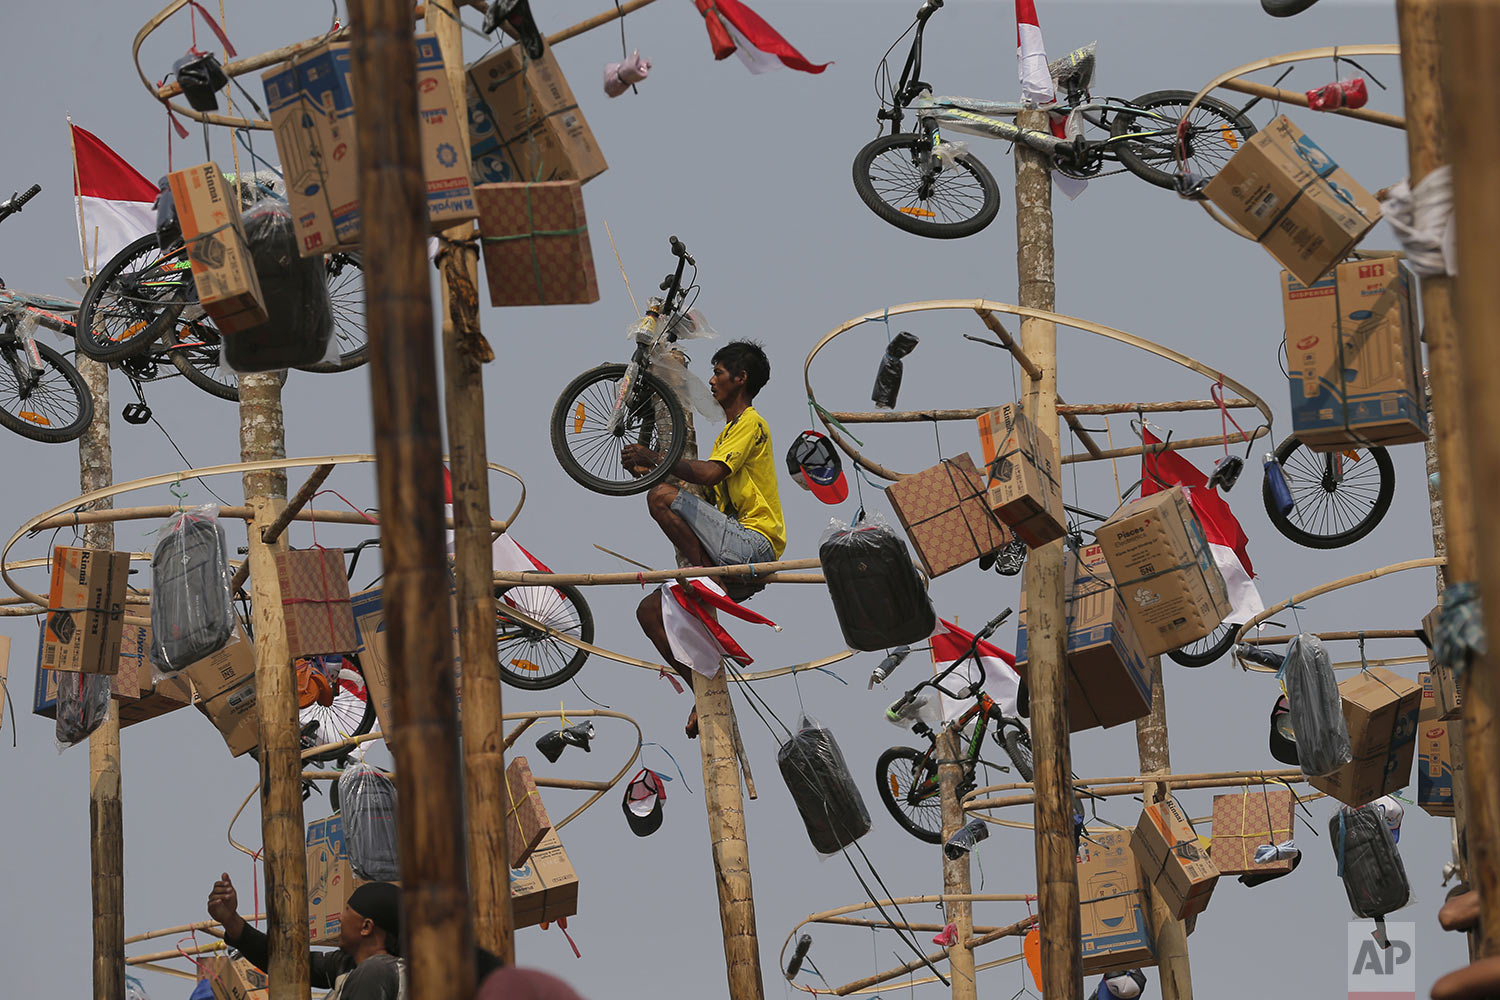 An Indonesian man retrieves his prize after climbing up a greased pole during a greased-pole climbing competition held as part of Independence Day celebrations at Ancol Beach in Jakarta, Indonesia, Saturday, Aug. 17, 2019. (AP Photo/Tatan Syuflana)